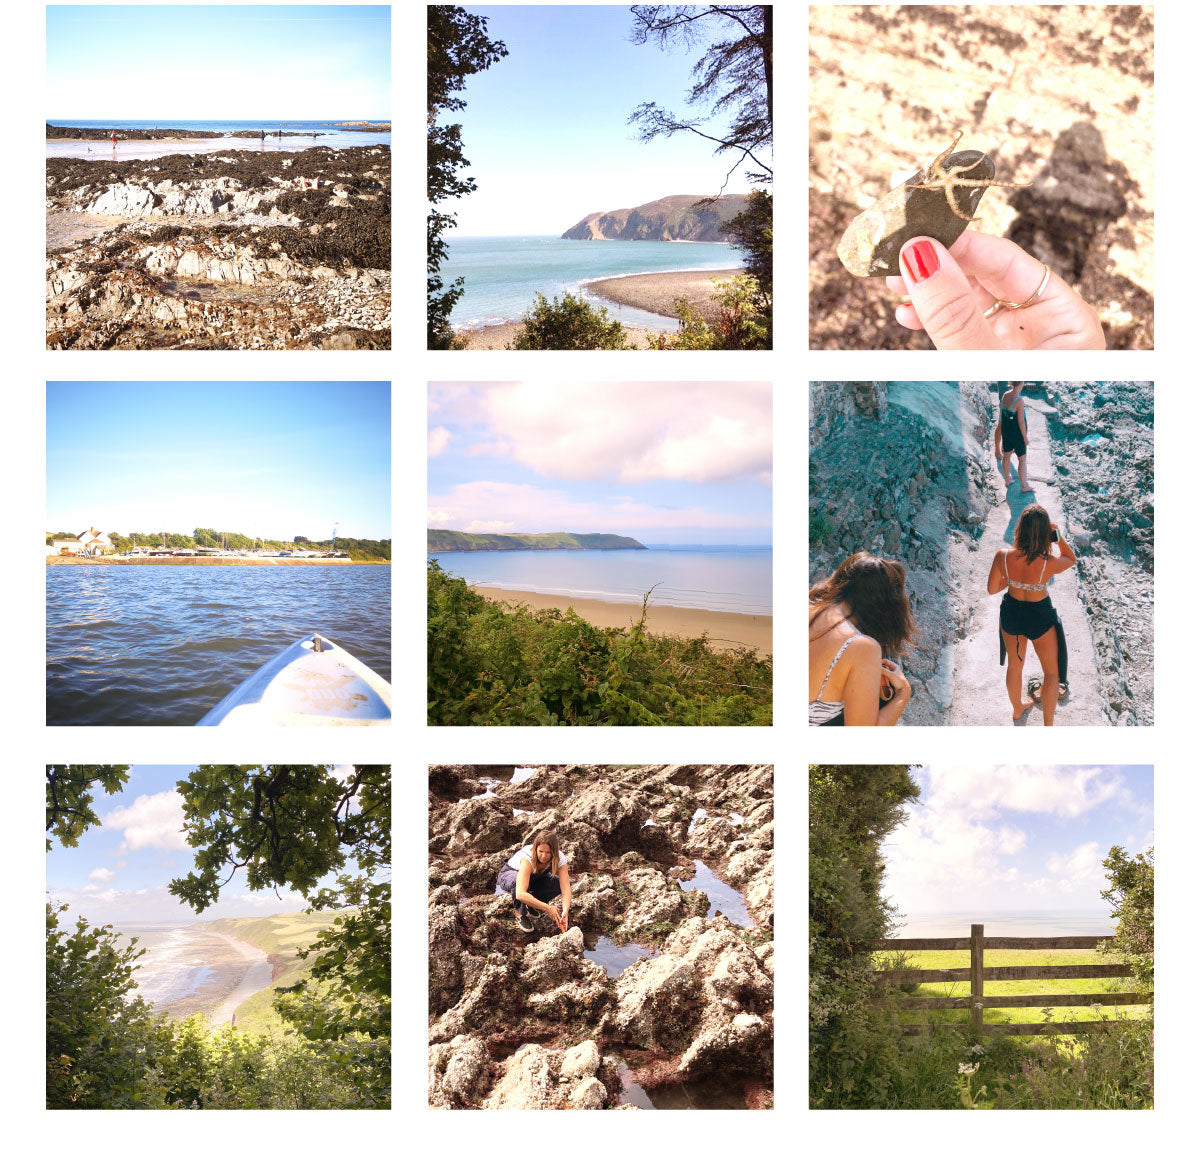 A grid of photos from the coast of North Devon - Instow, Baggy Point, Woolacombe, Morte Point, Croyde, Lee Bay